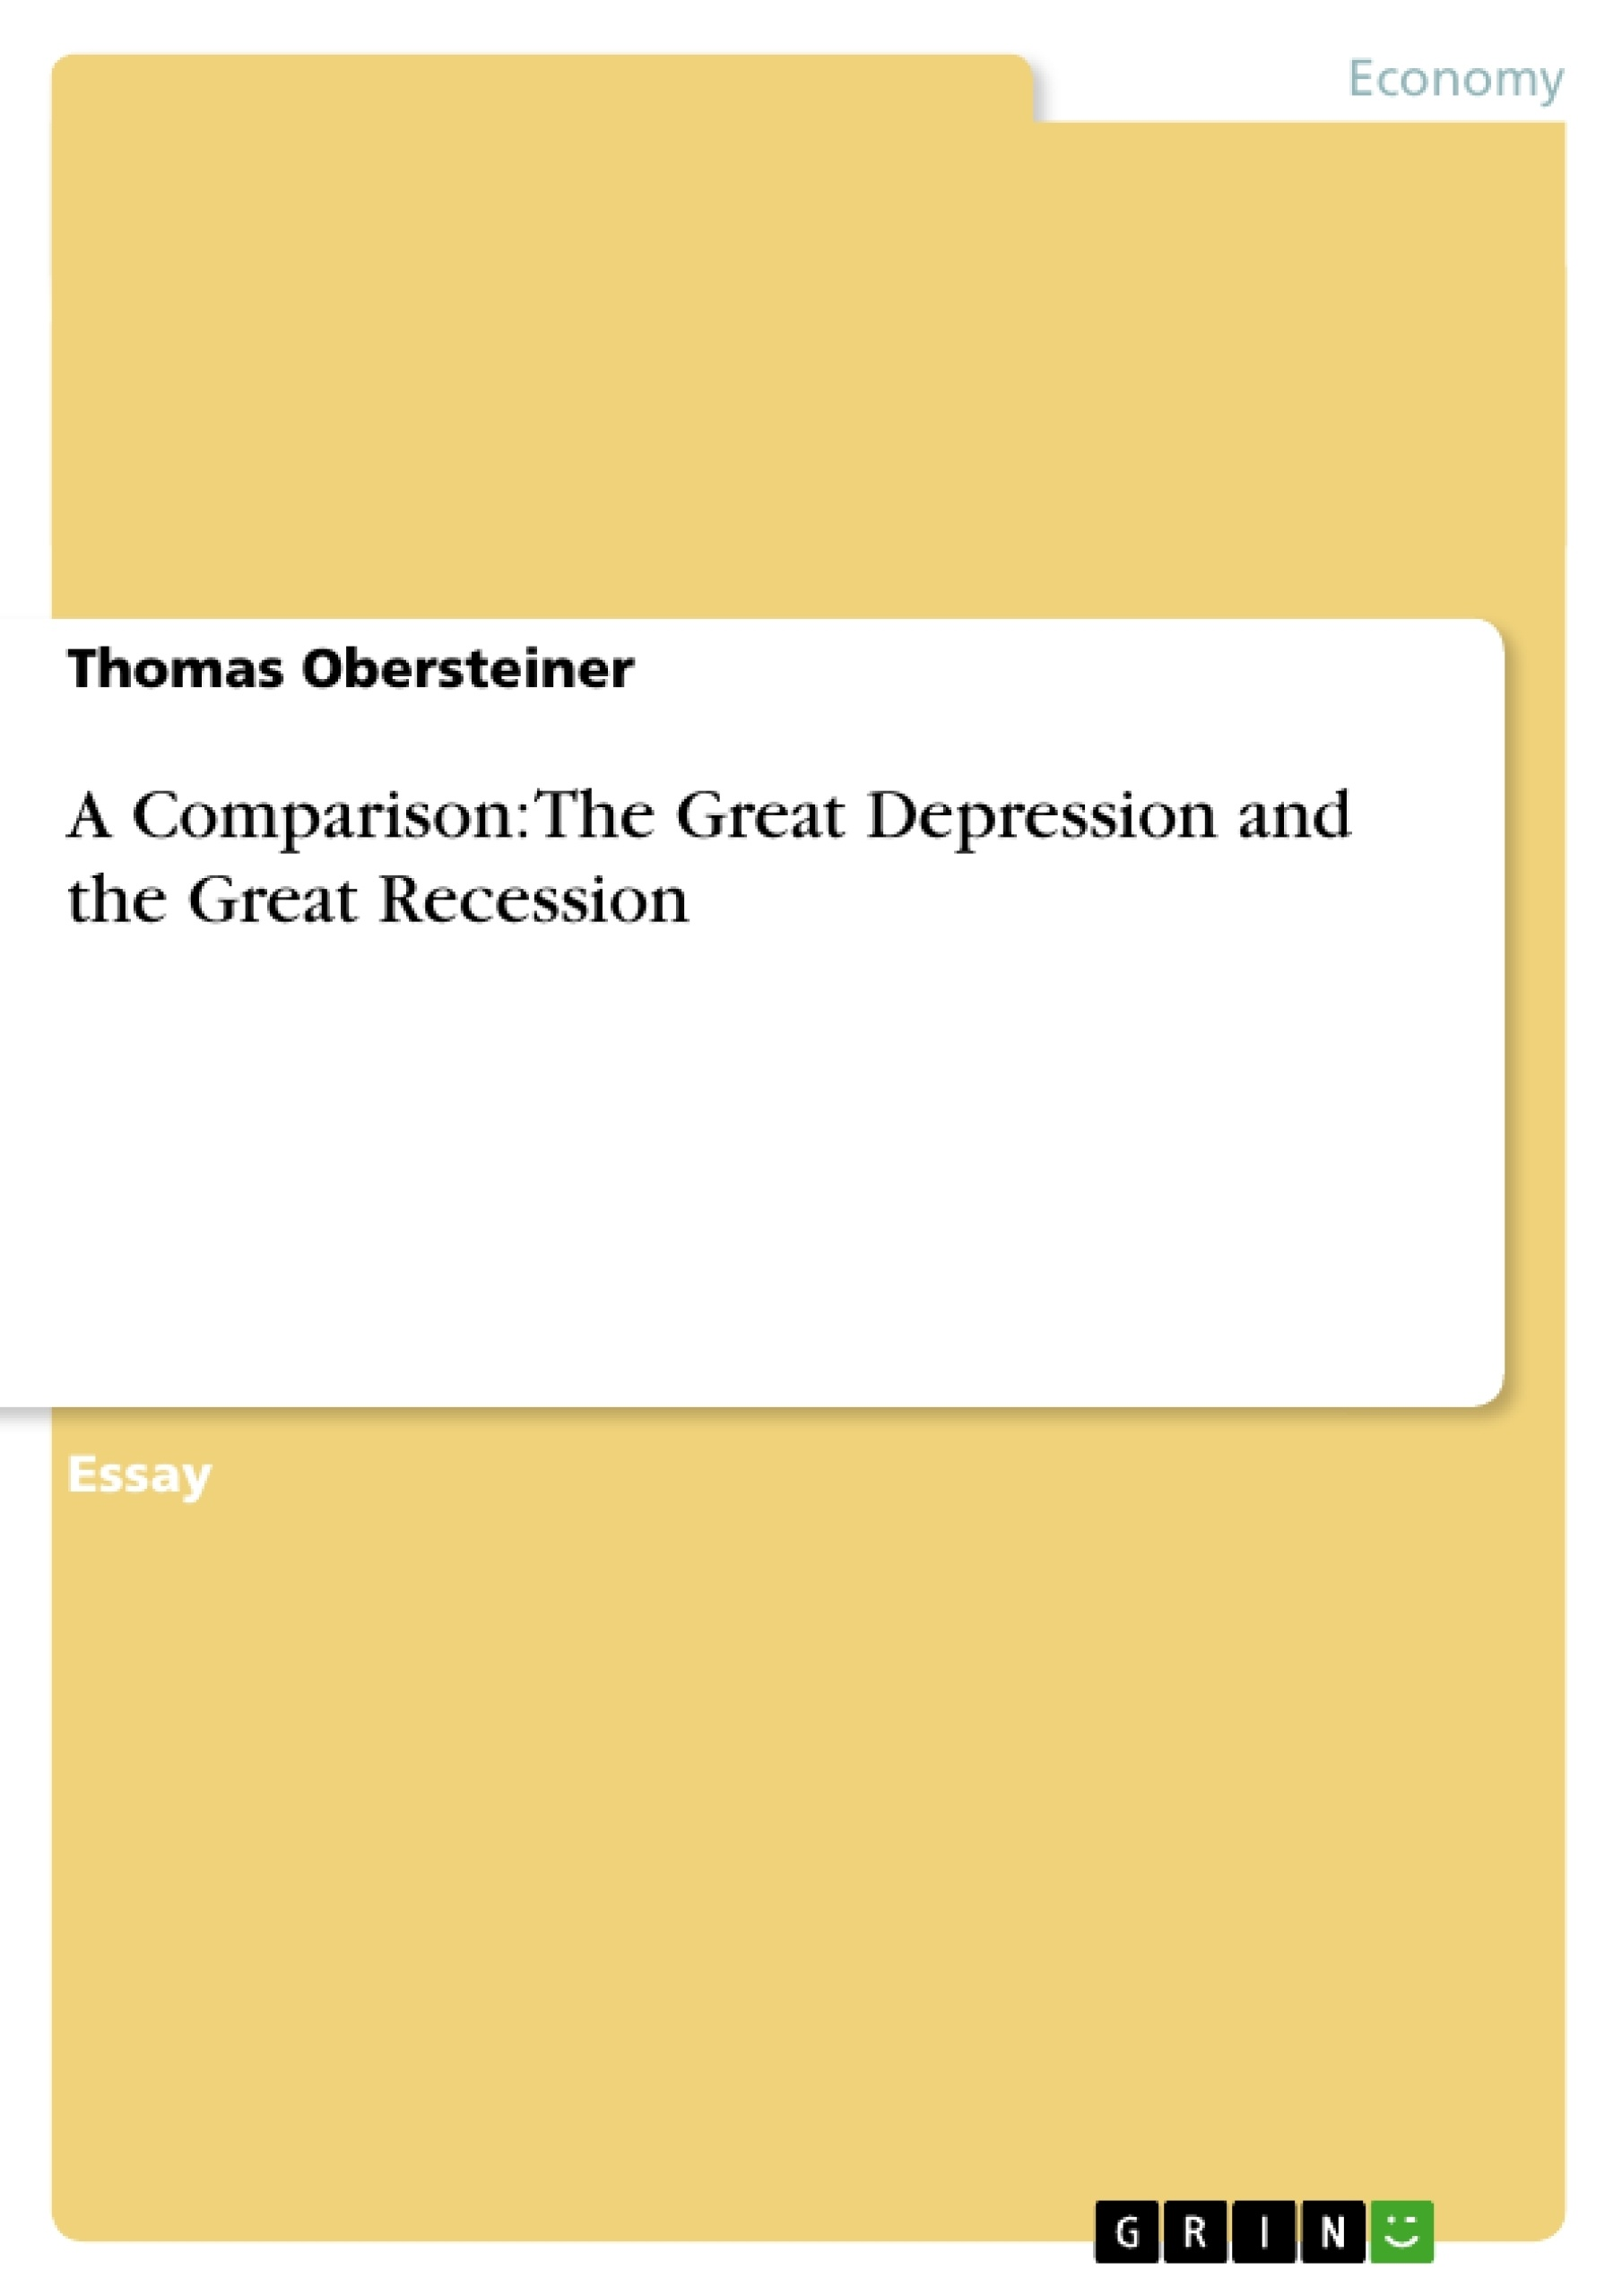 essay great depression